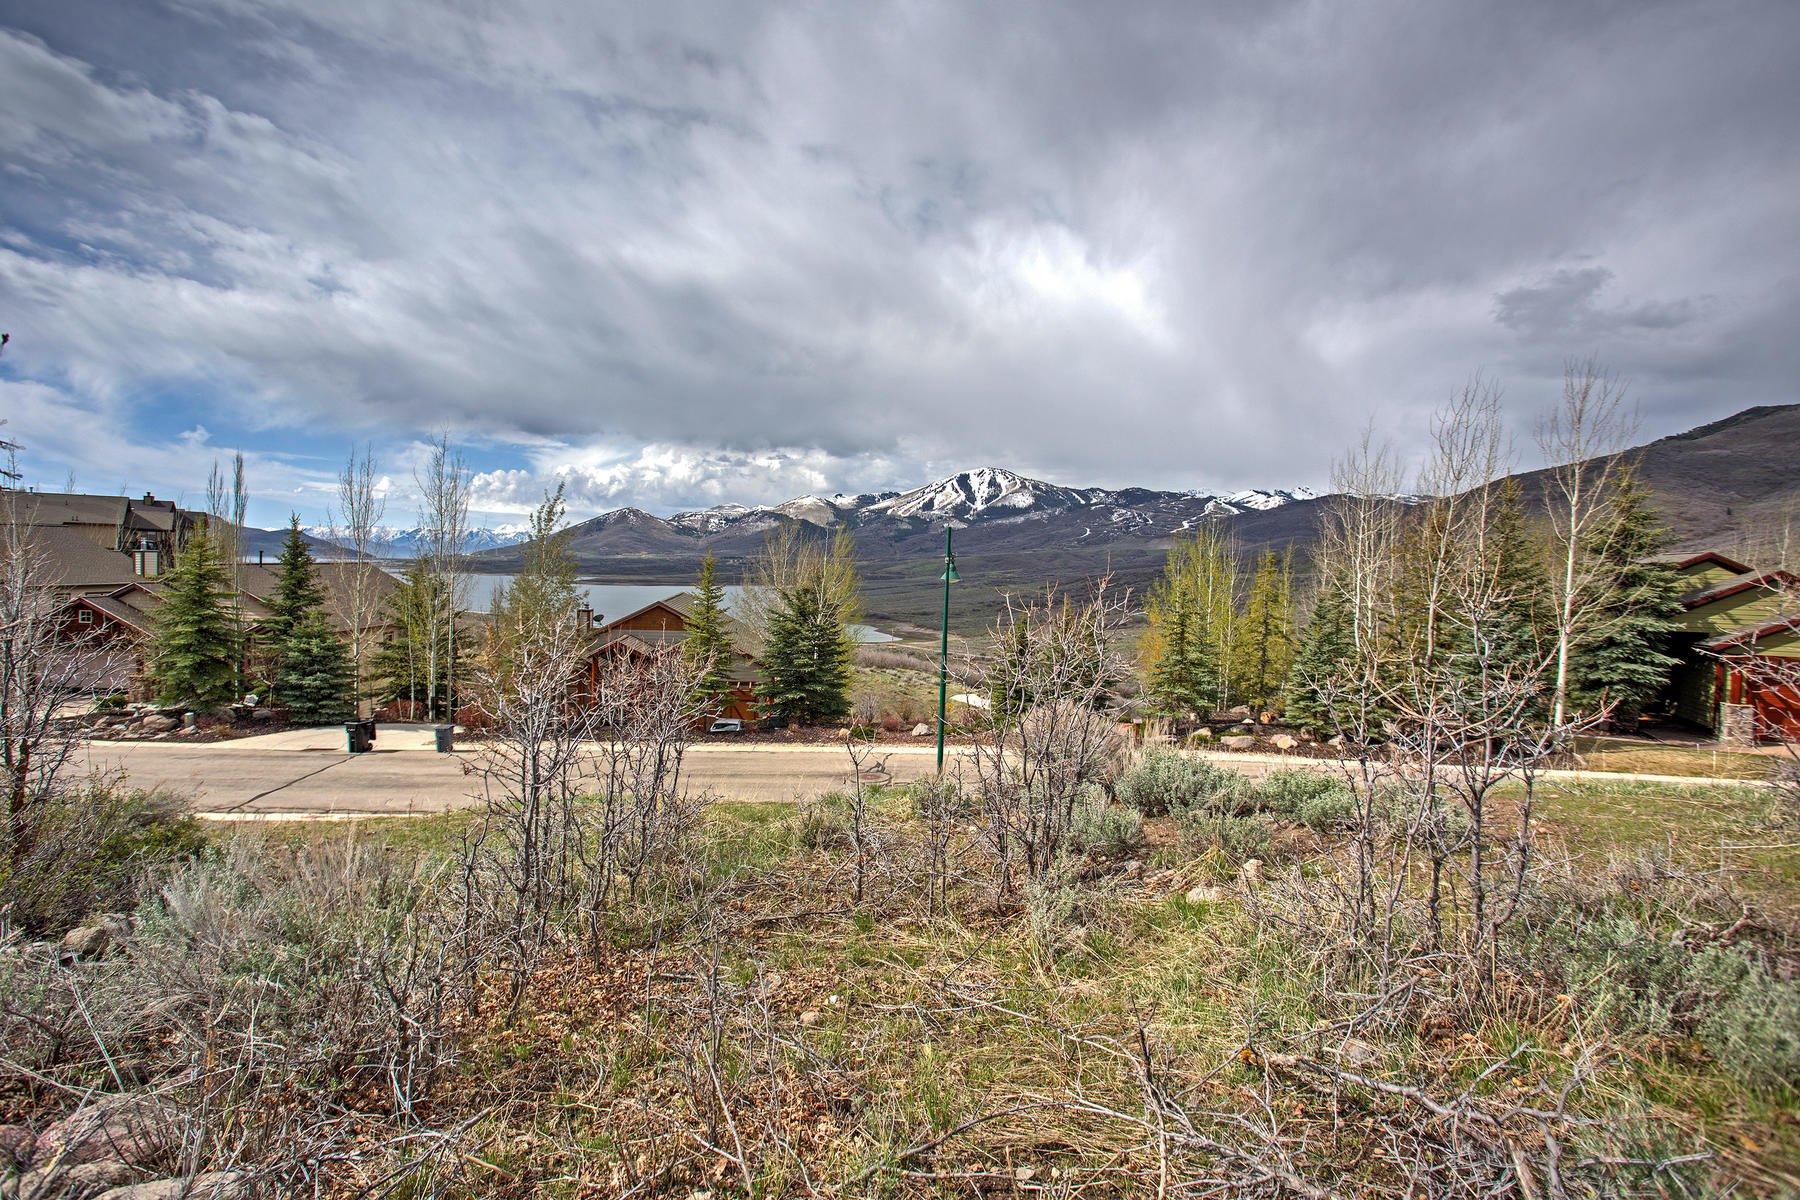 Additional photo for property listing at Deer Mountain Home Site with Deer Valley Views 12492 N Ross Creek Dr Lot 58 Heber City, Utah 84032 United States